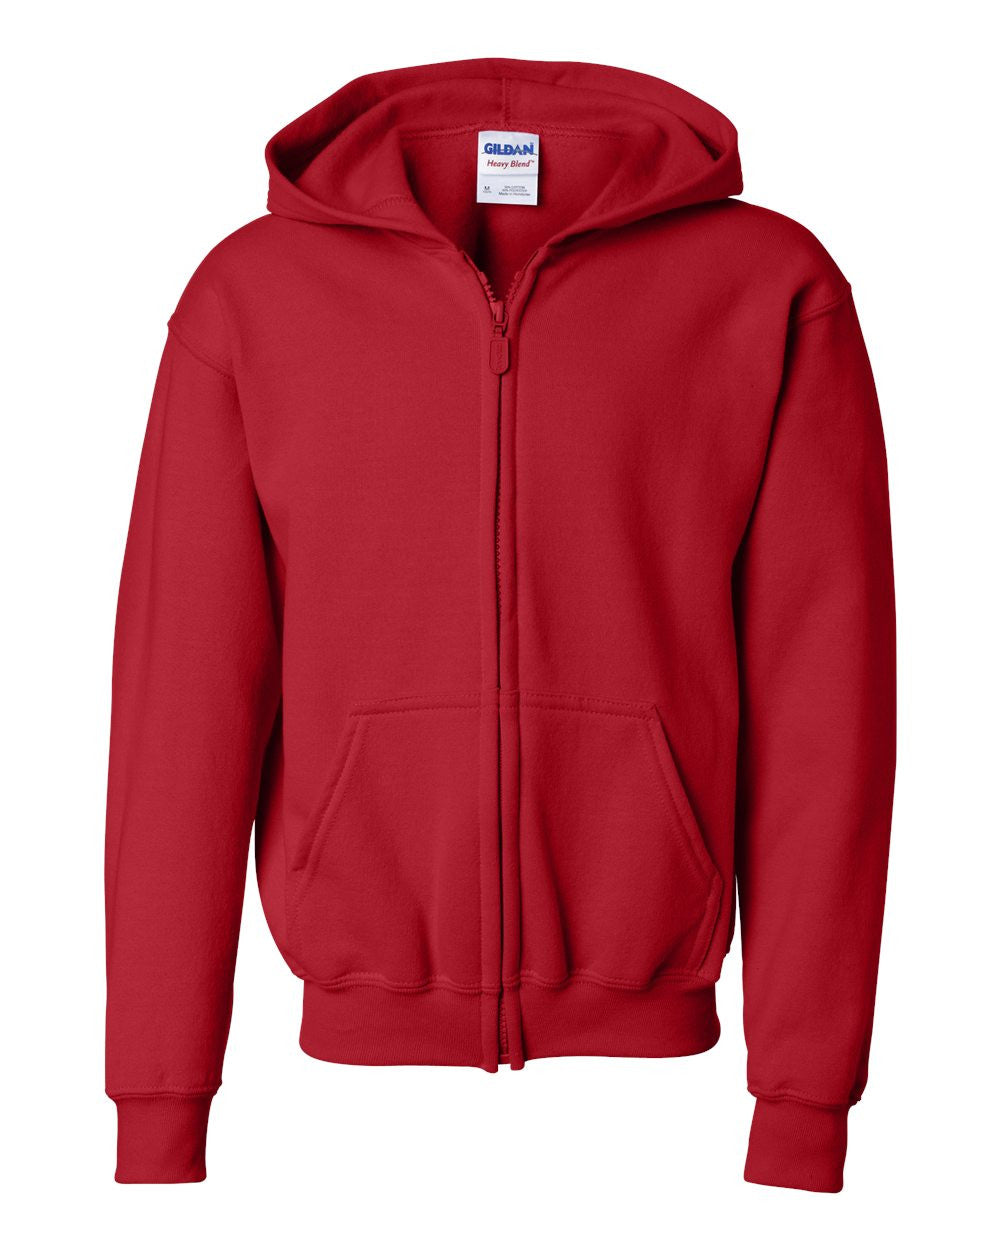 Full-Zip Hooded youth Sweatshirt  by Gildan